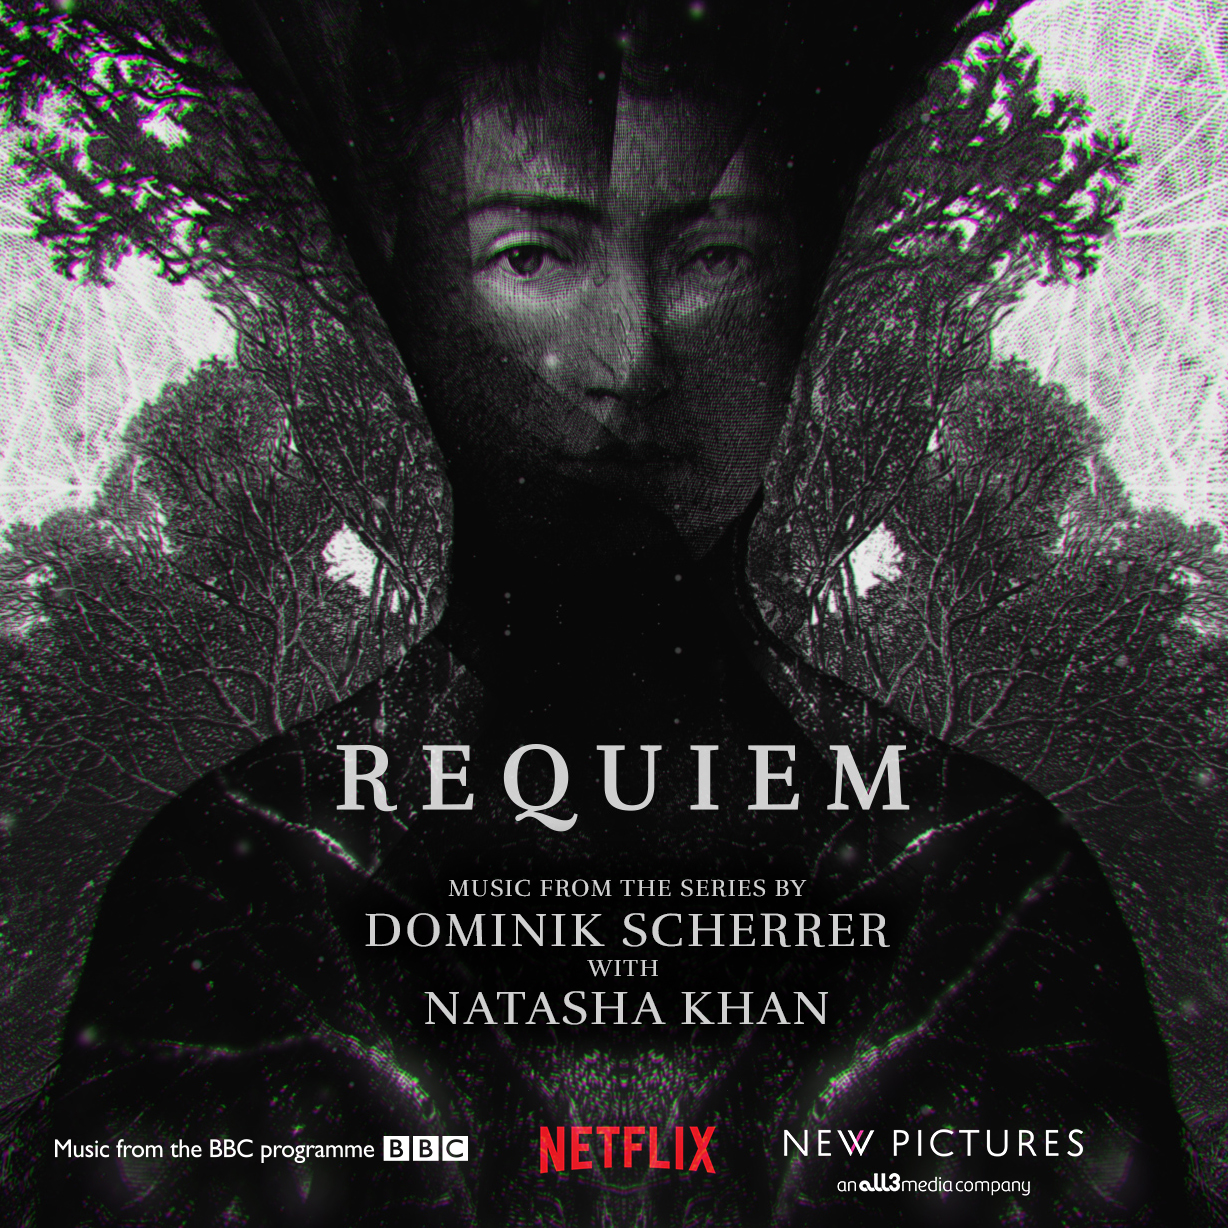 Requiem-OST-Artwork.jpg